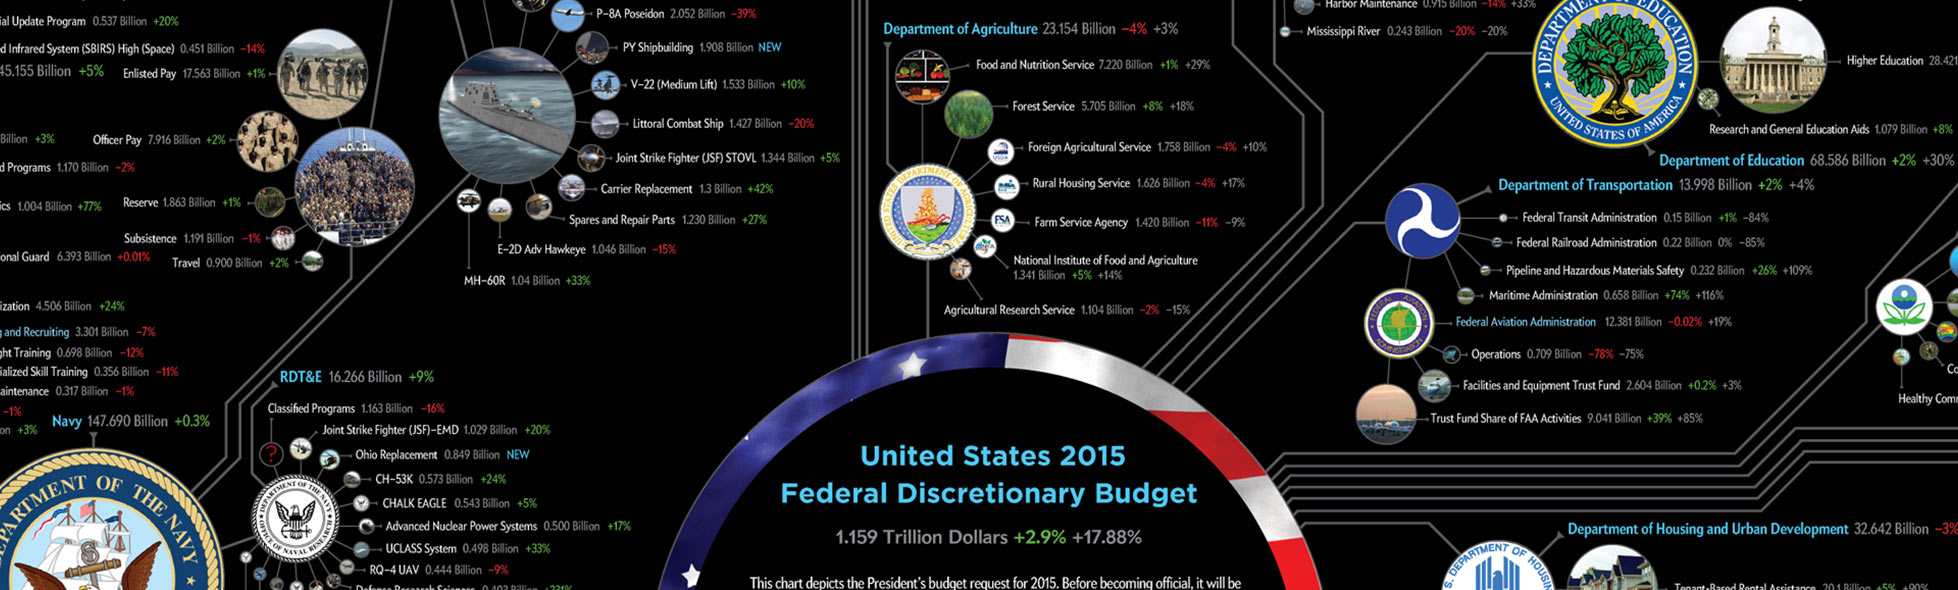 2015 Death and Taxes - US Federal Budget